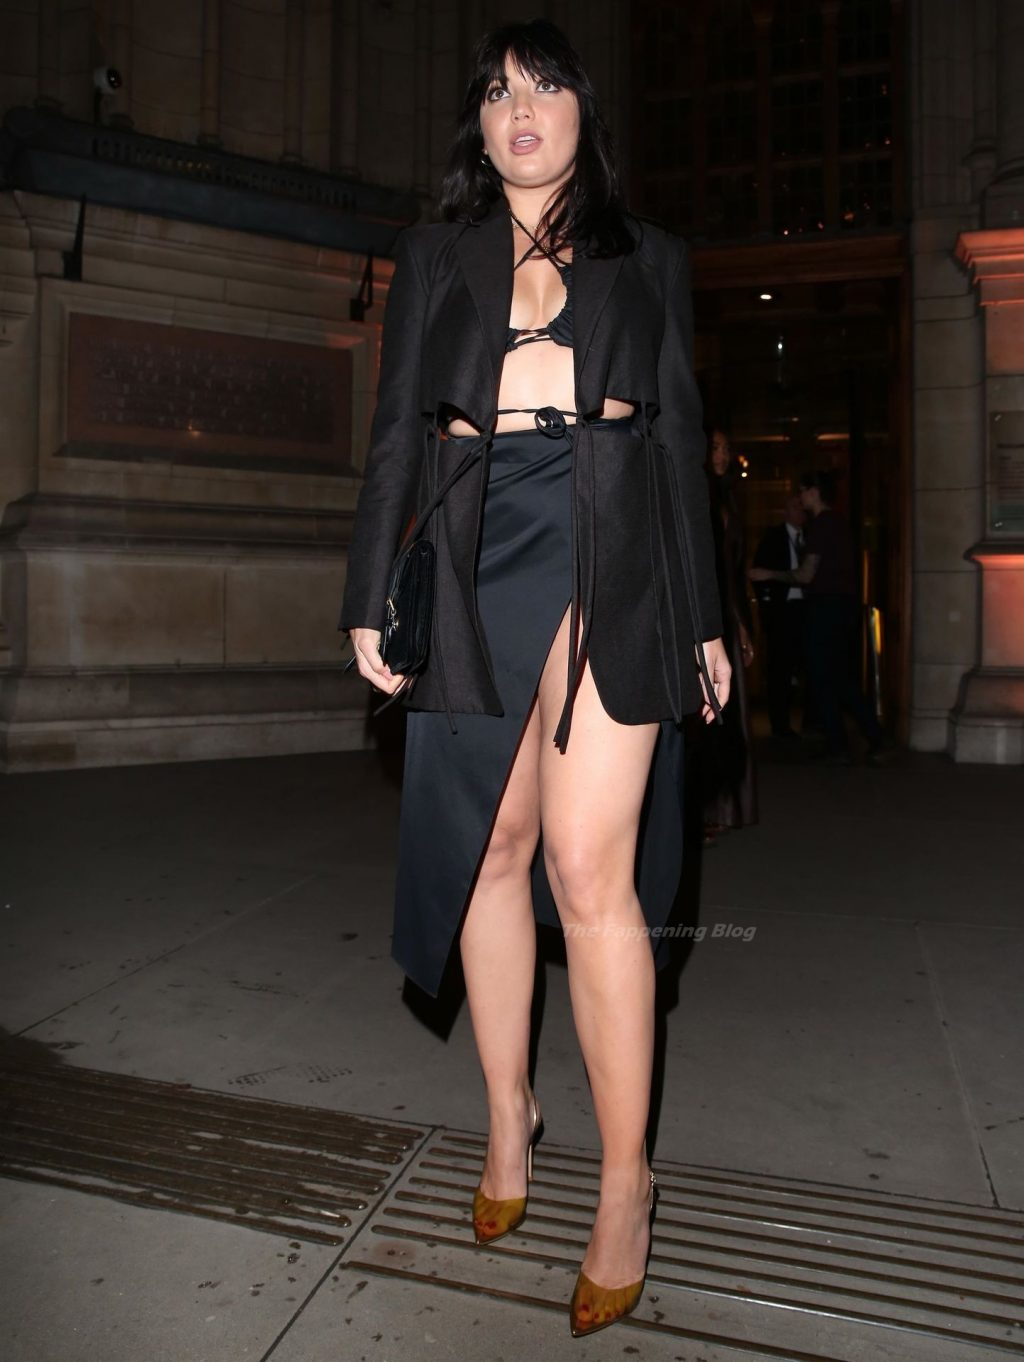 Daisy Lowe Flaunts Her Sexy Legs As She Attends Richard Malone x Mulberry Show in London (71 Photos)